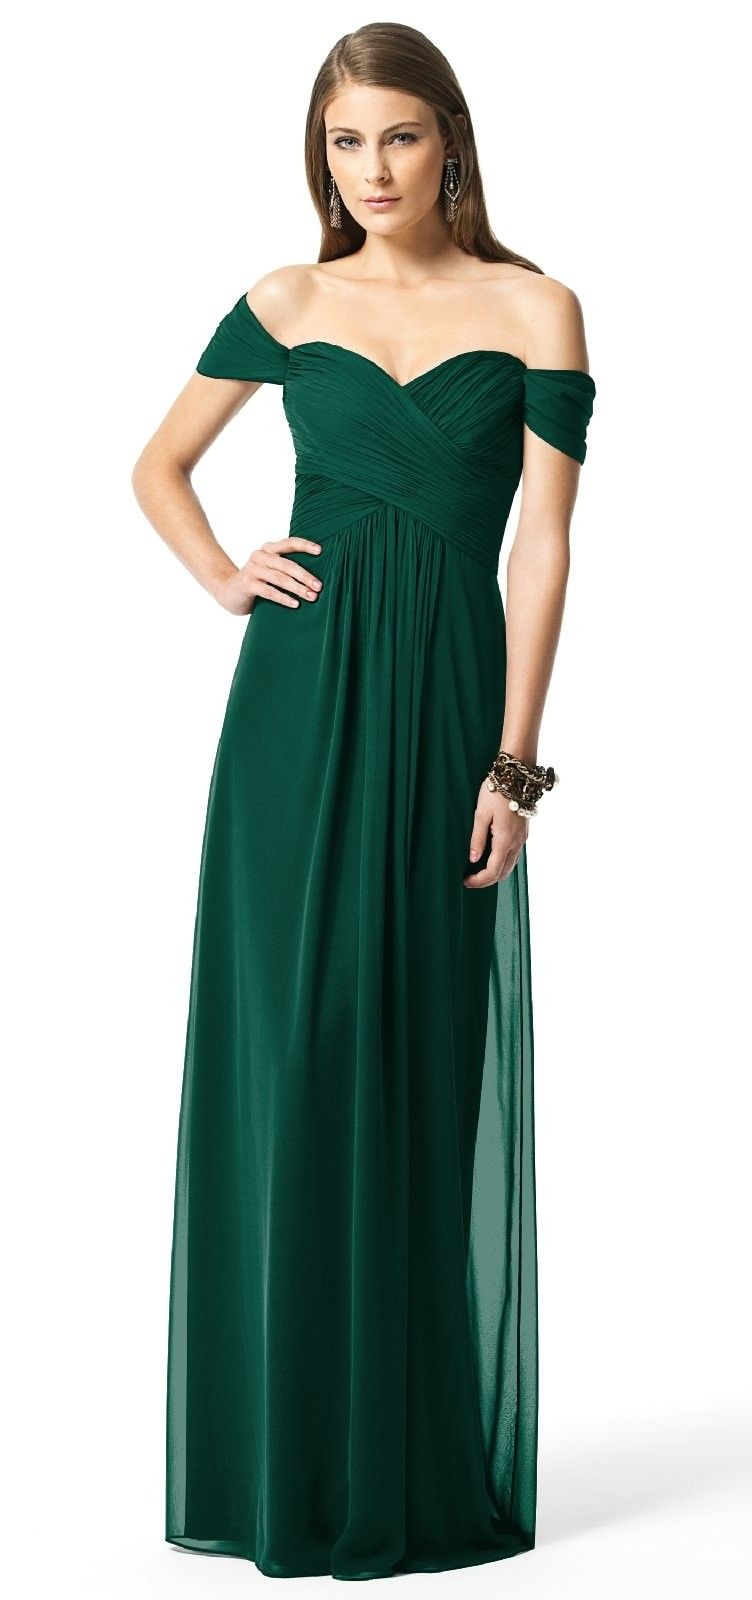 13af91014c72 Loving your dark green color idea as a possible brides maid dress color... ( love marigold and red too though!! :)